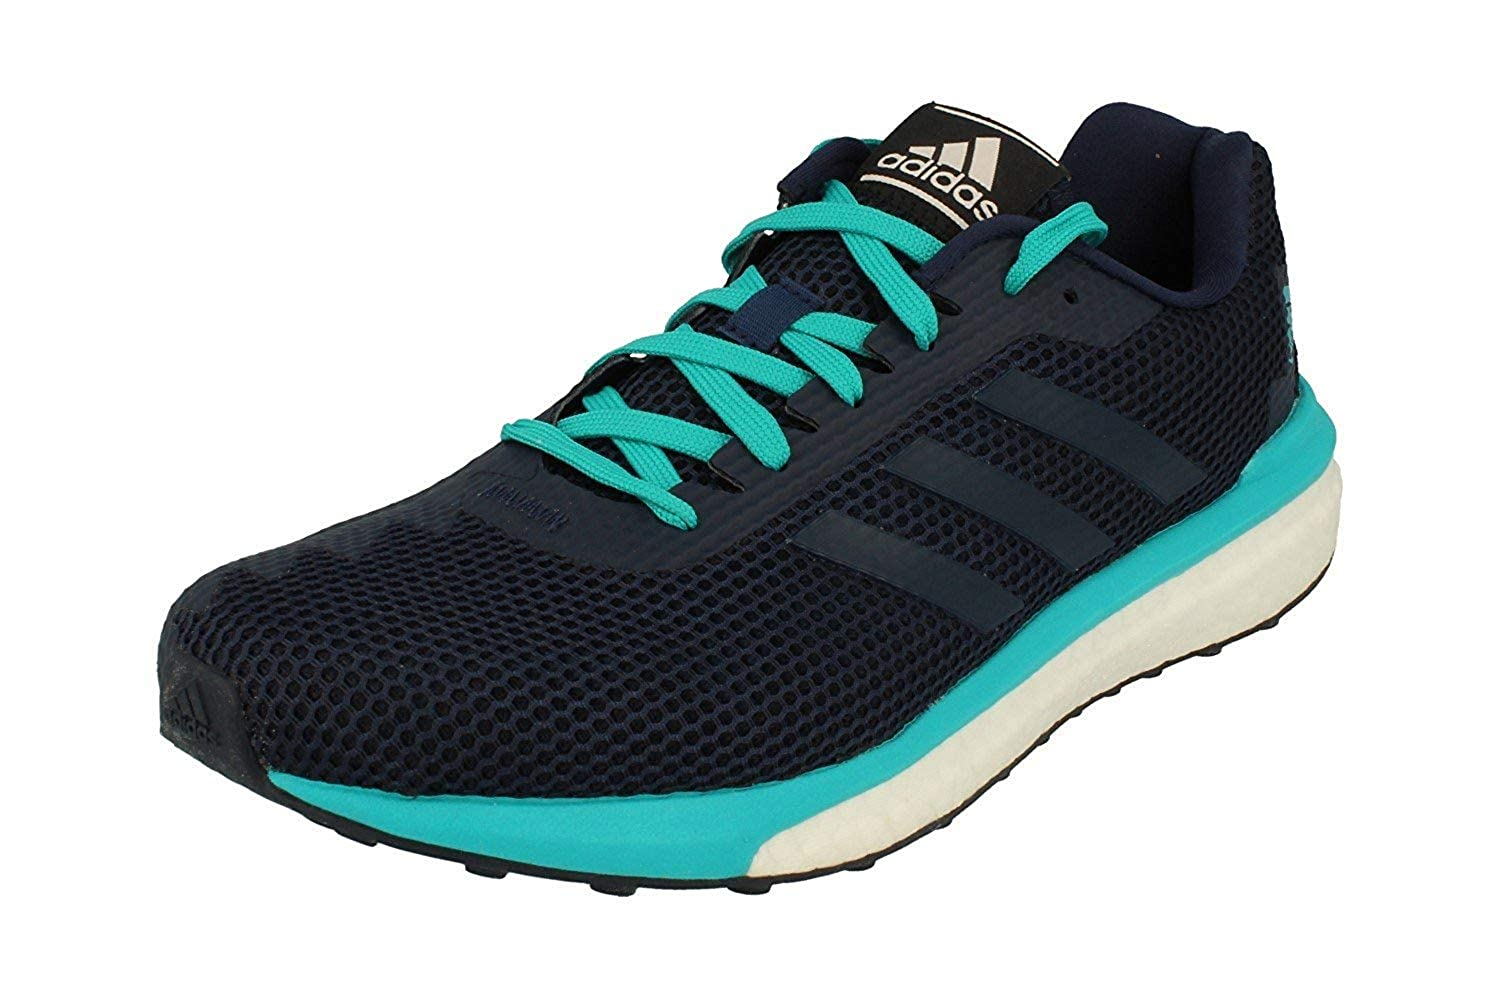 Adidas Vengeful Mens Running Trainers Turnschuhe (UK 9.5 US 10 EU 44, Blau Weiß Turquoise BB1633)